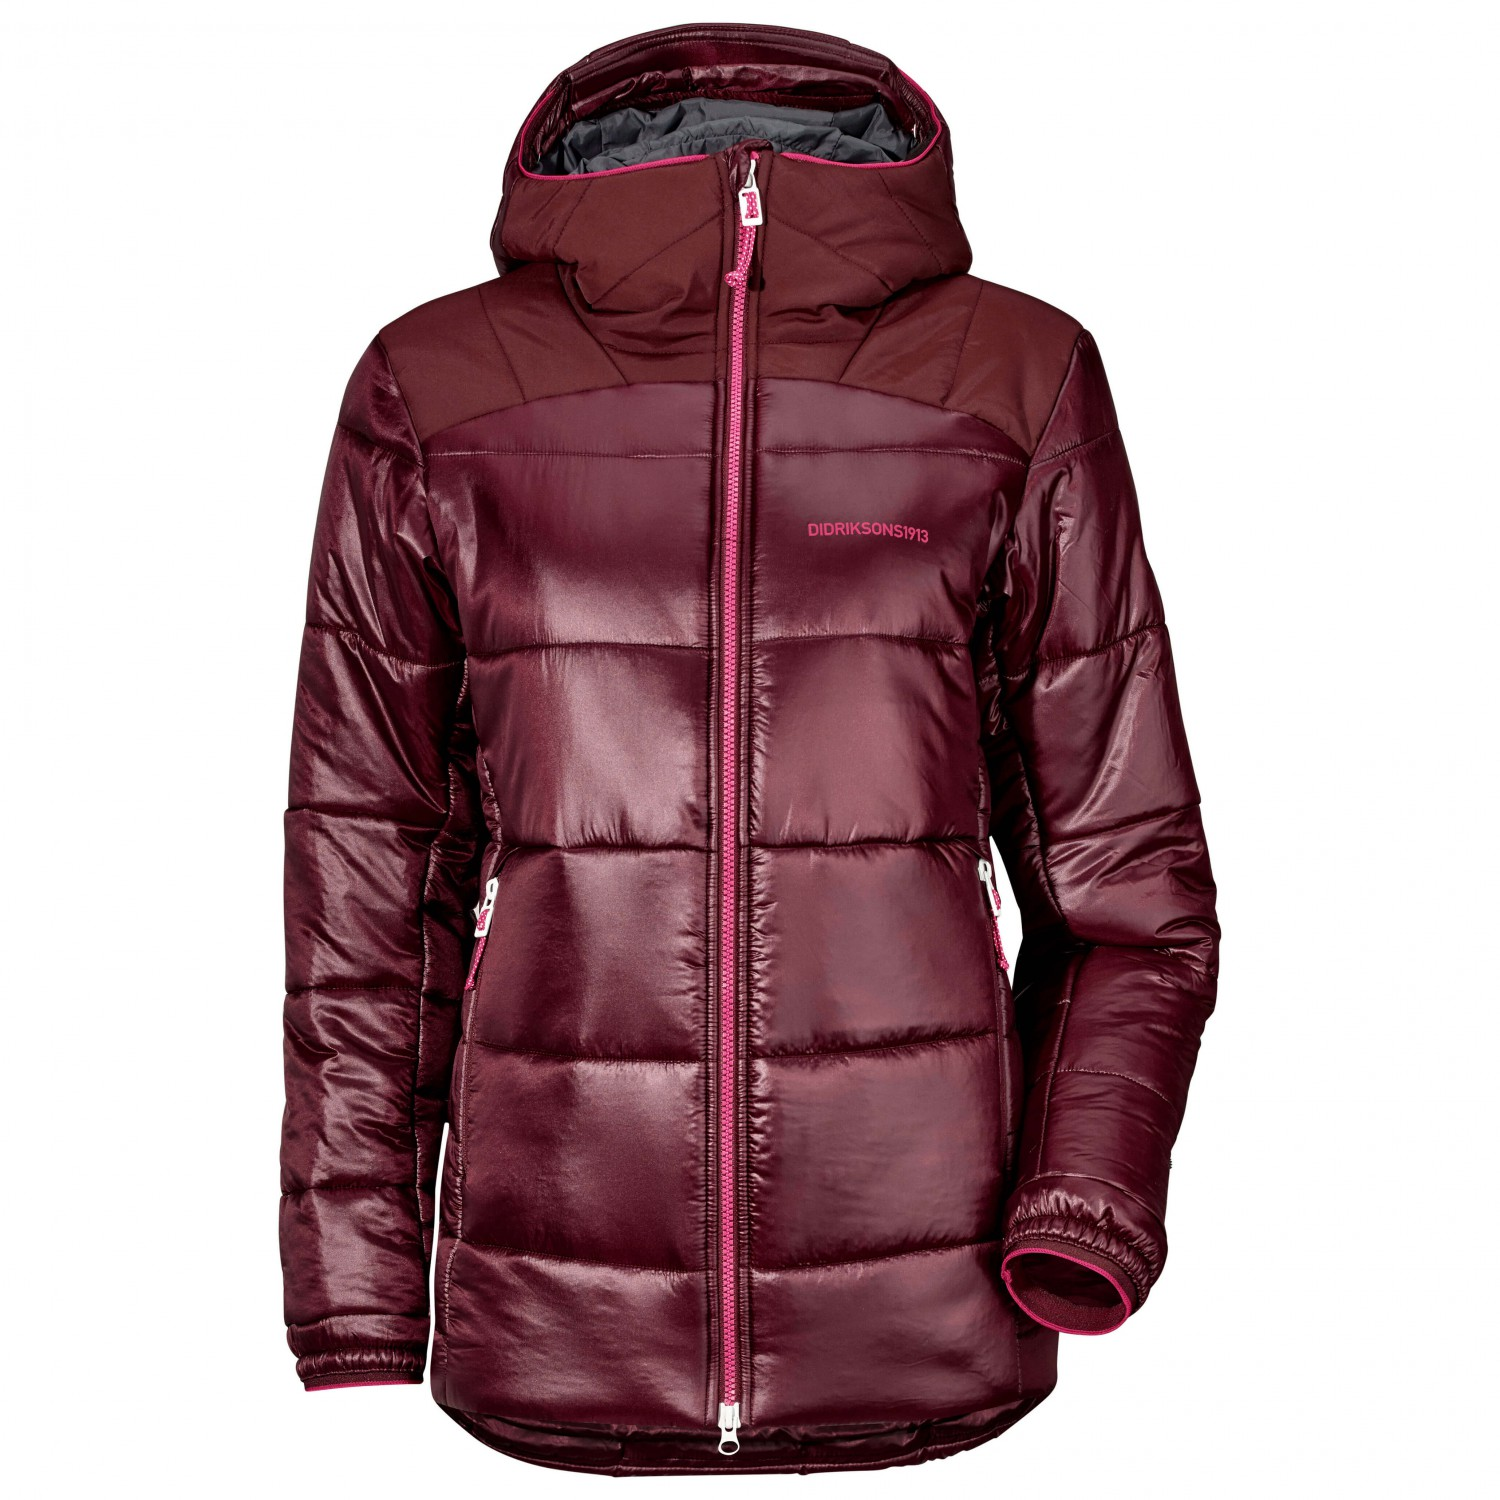 Women S Red Winter Coats Uk - Tradingbasis